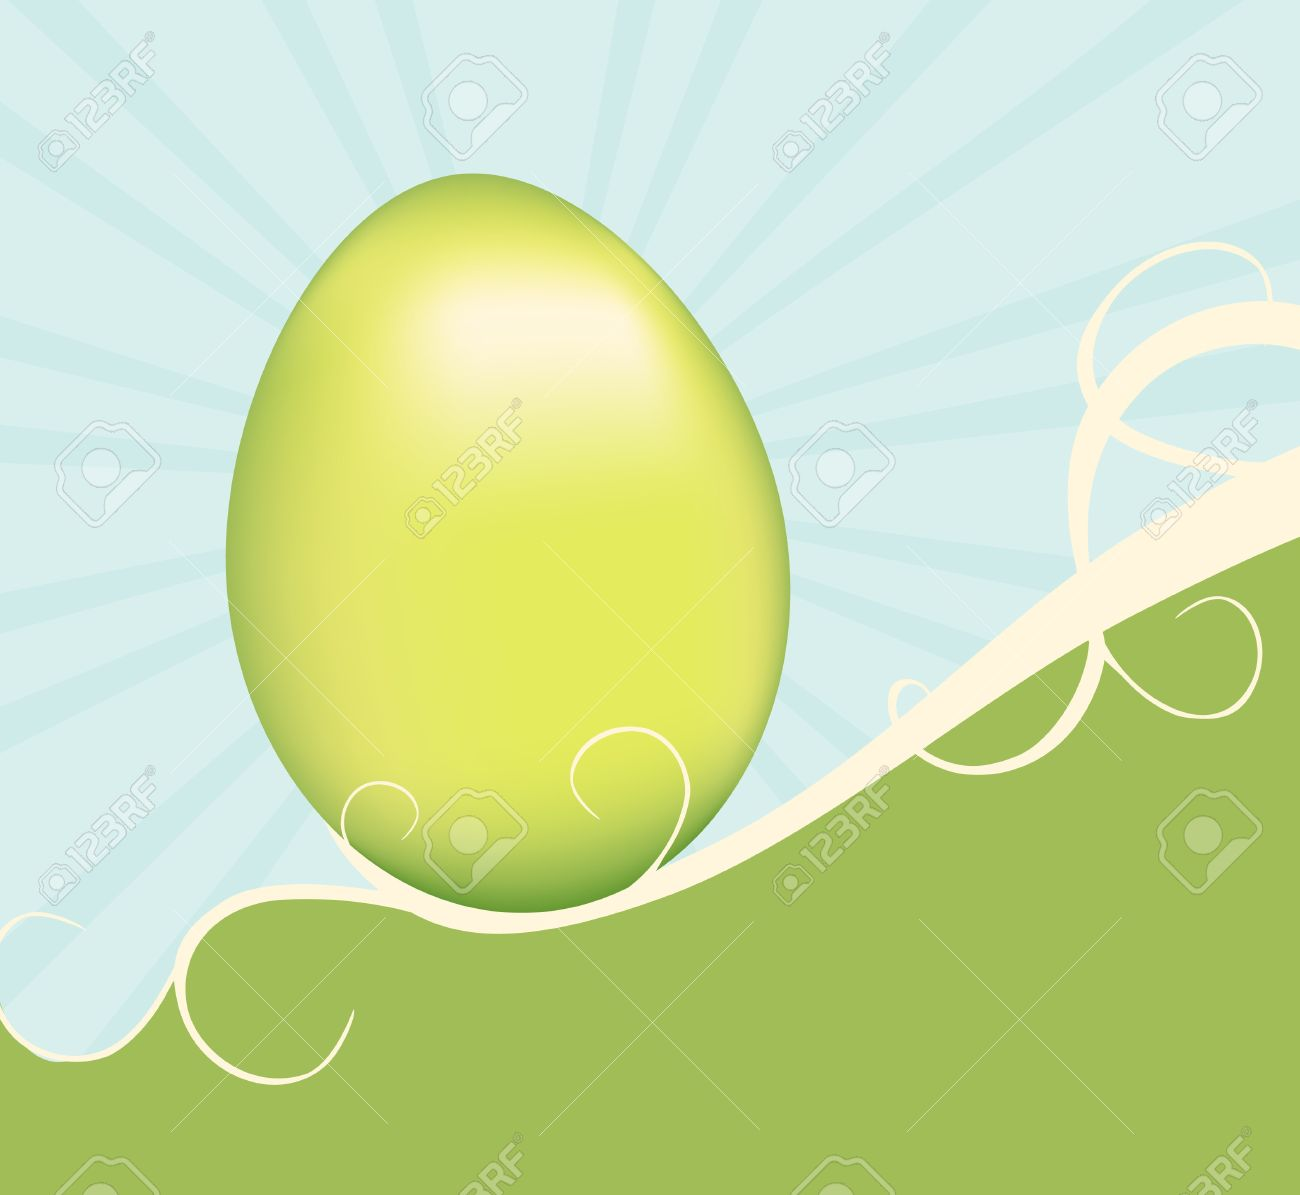 A Green Easter Egg Supported By Swirling Vines On A Hill. Pastel.